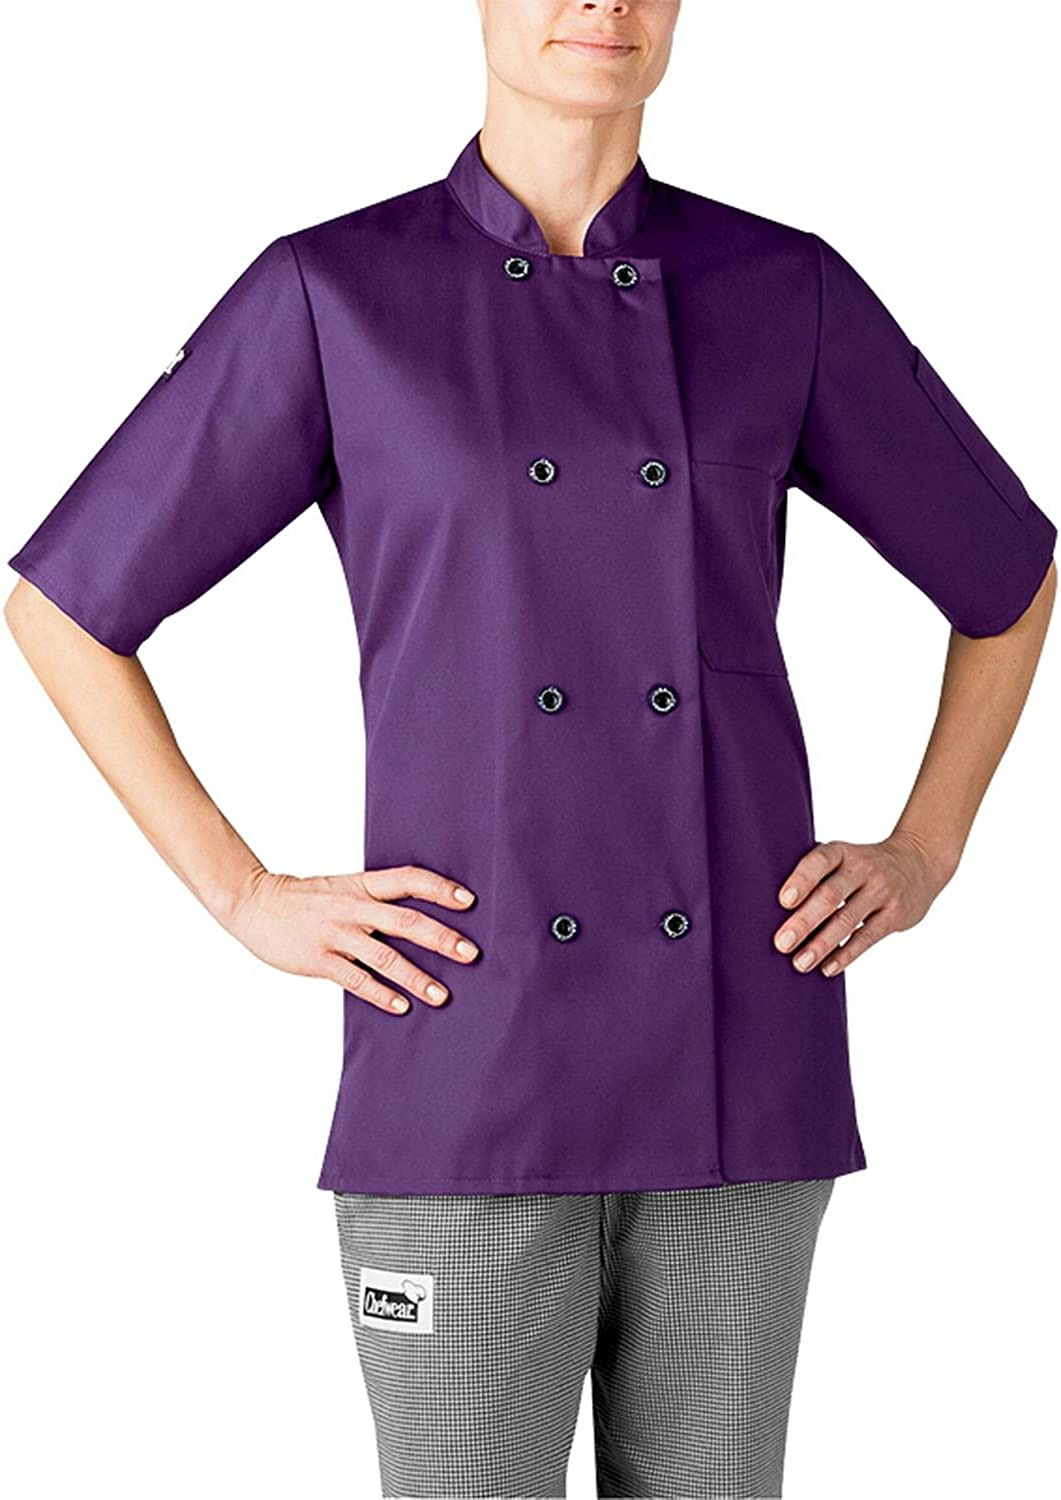 Chefwear 4465108 Women's Short Sleeve Chef Jacket